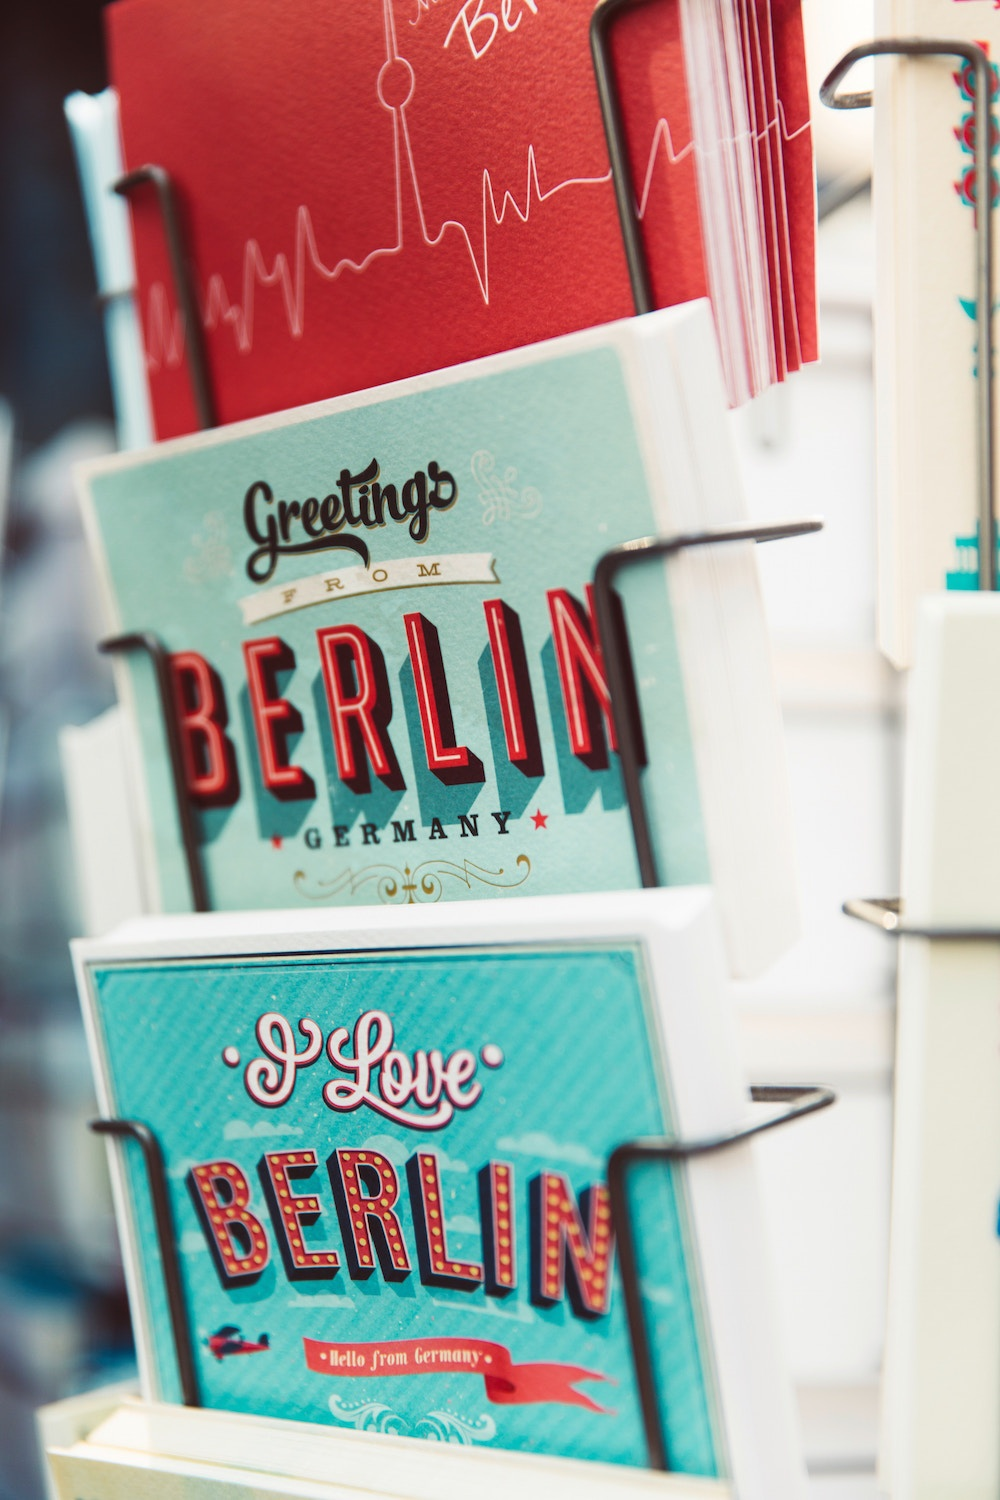 Small and mid-size businesses in Germany are adapting to digital trends in customer service and customer support.